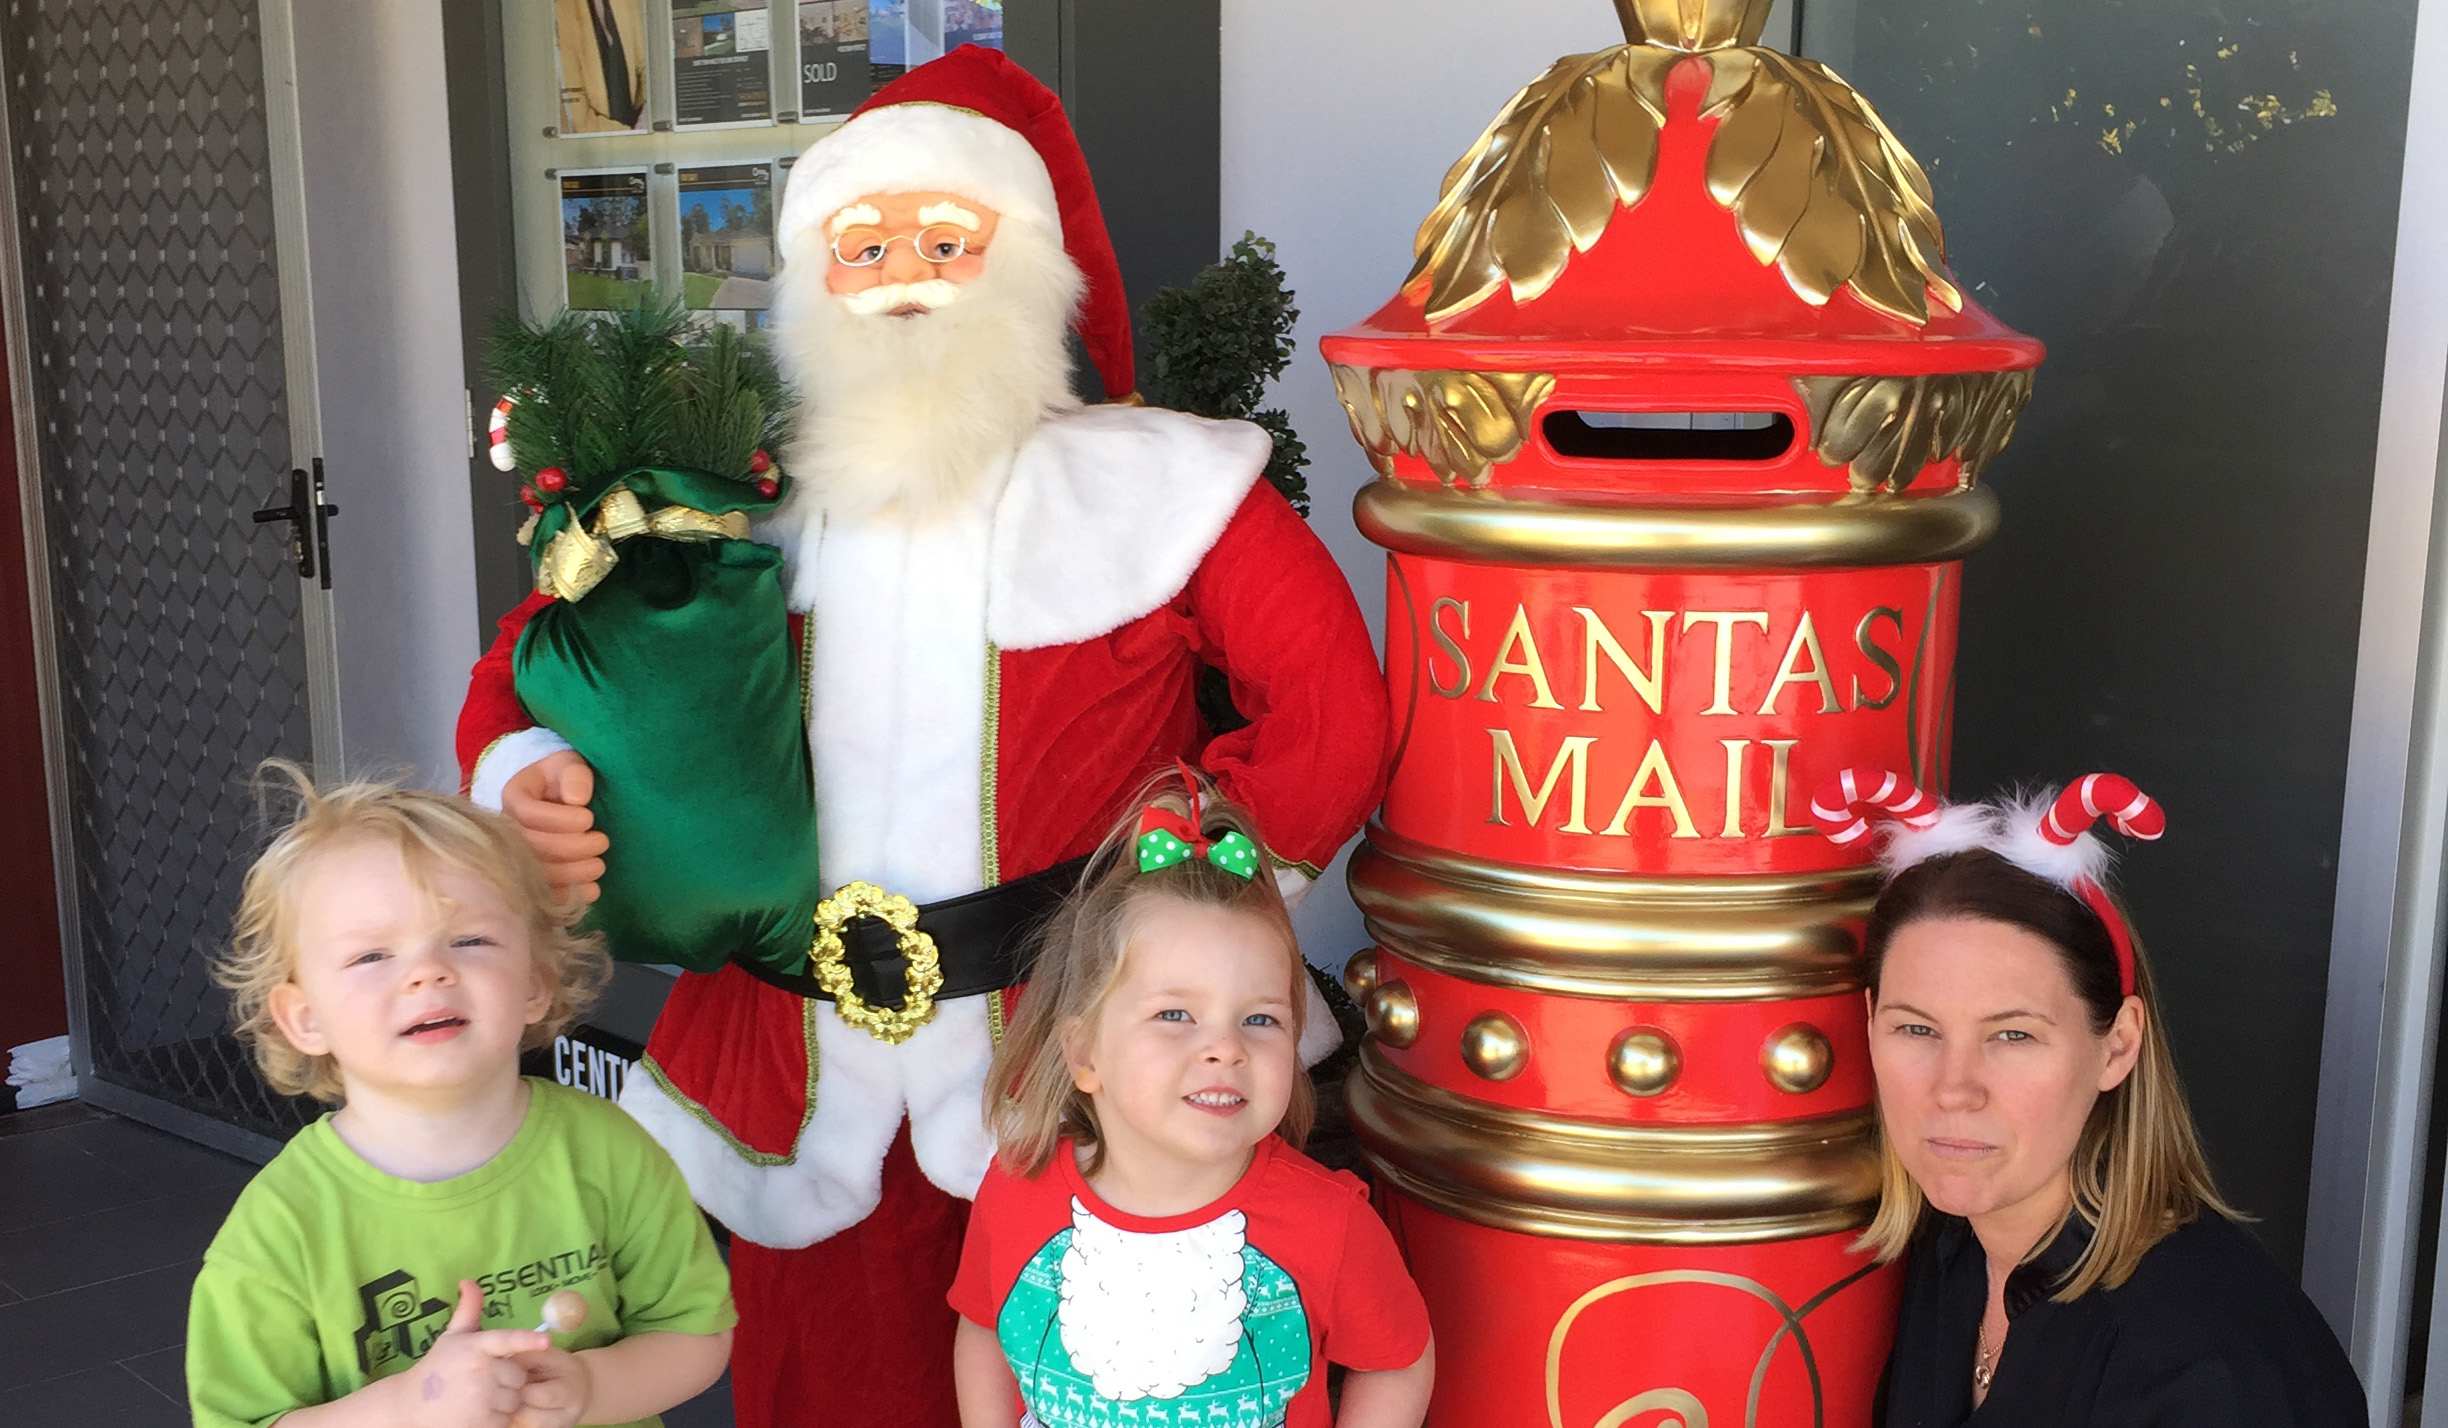 Xavier Vaughan and Evie Jeffery delivering their letter to Santa with Jane Blair from Century 21.